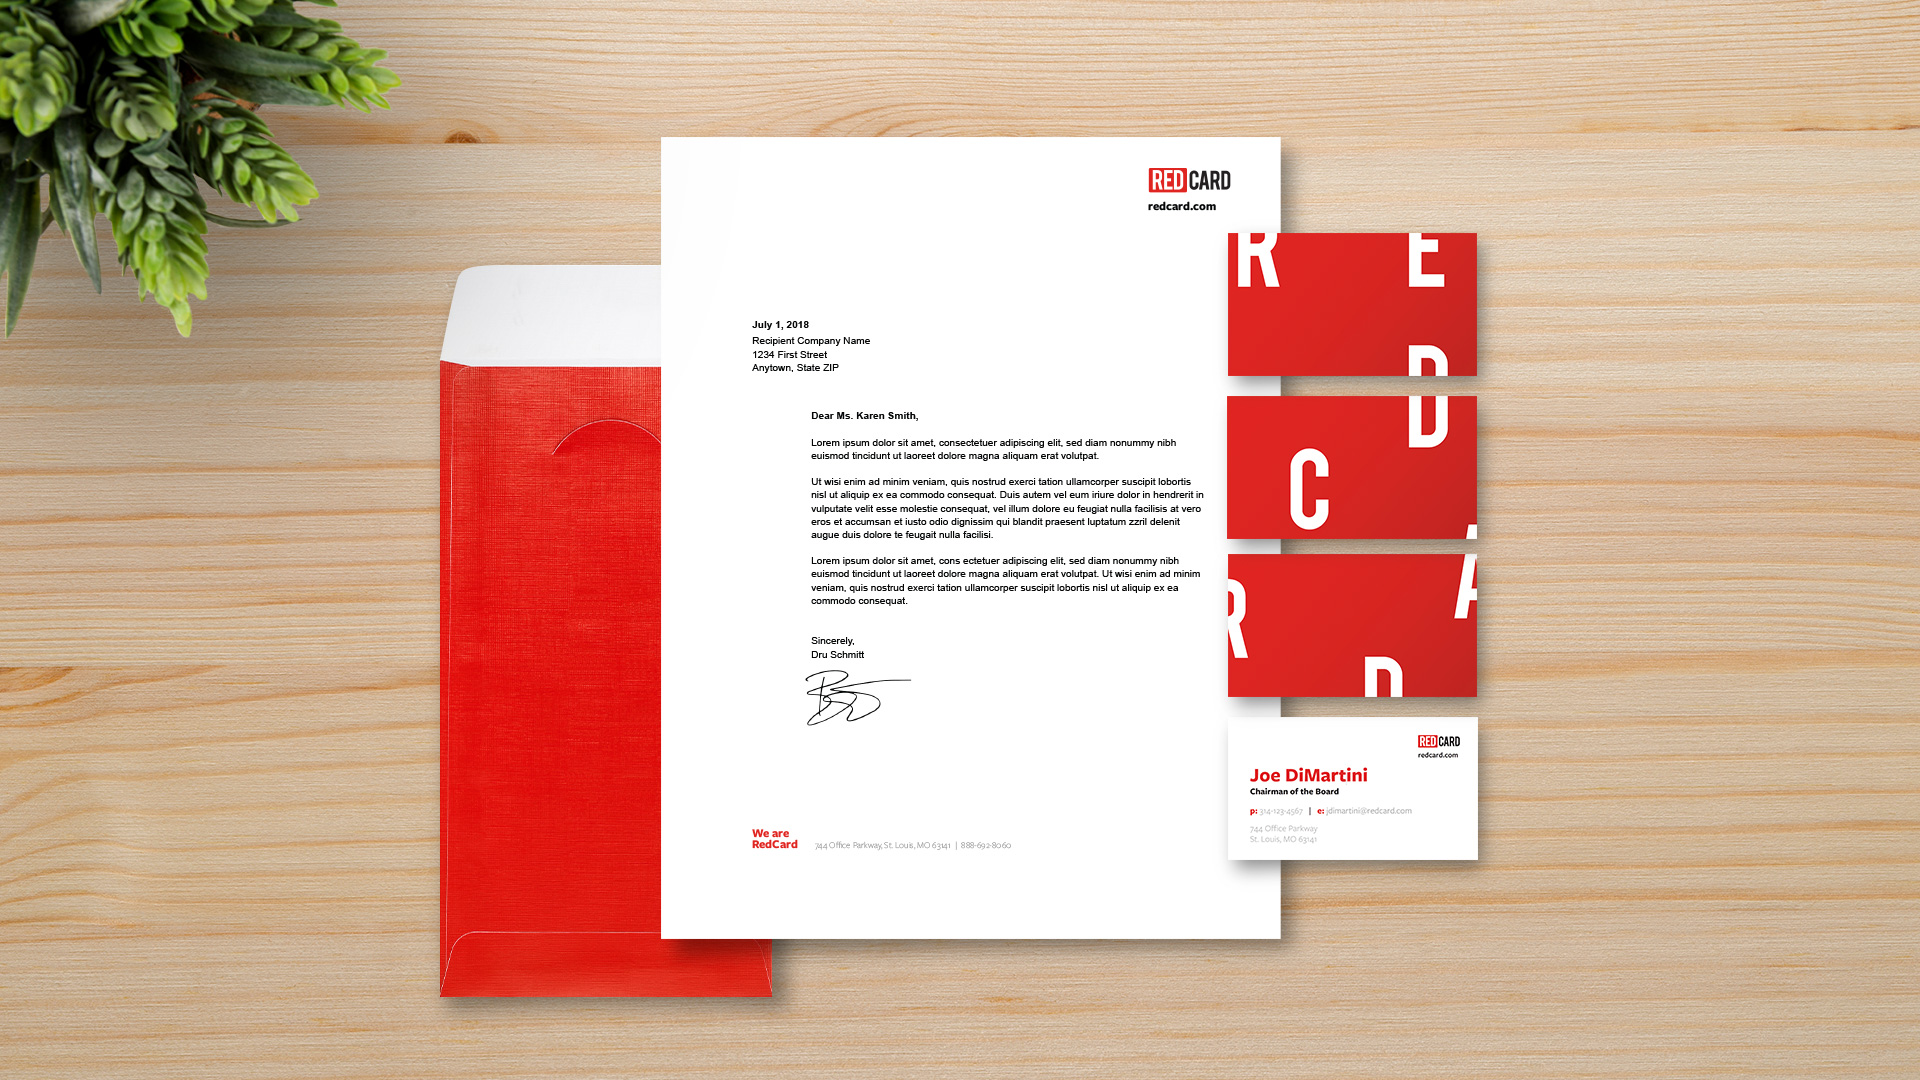 Branded stationery elements created specifically for the healthcare marketing company RedCard